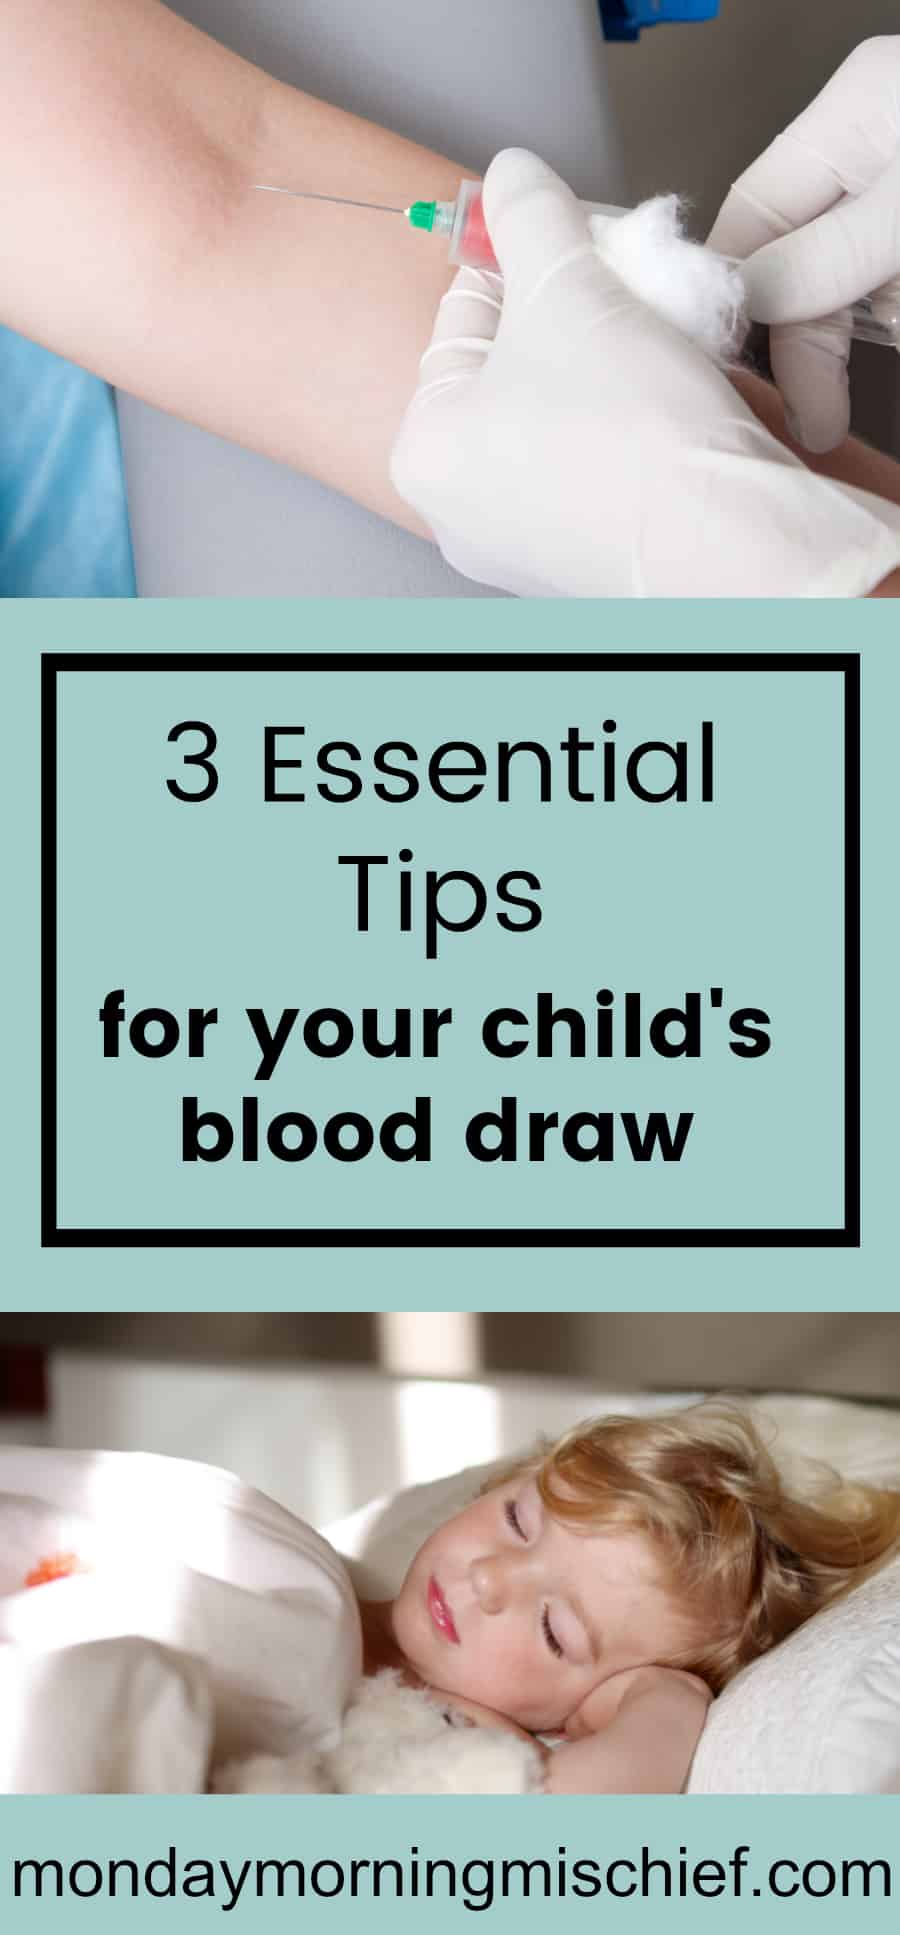 childs blood draw tips